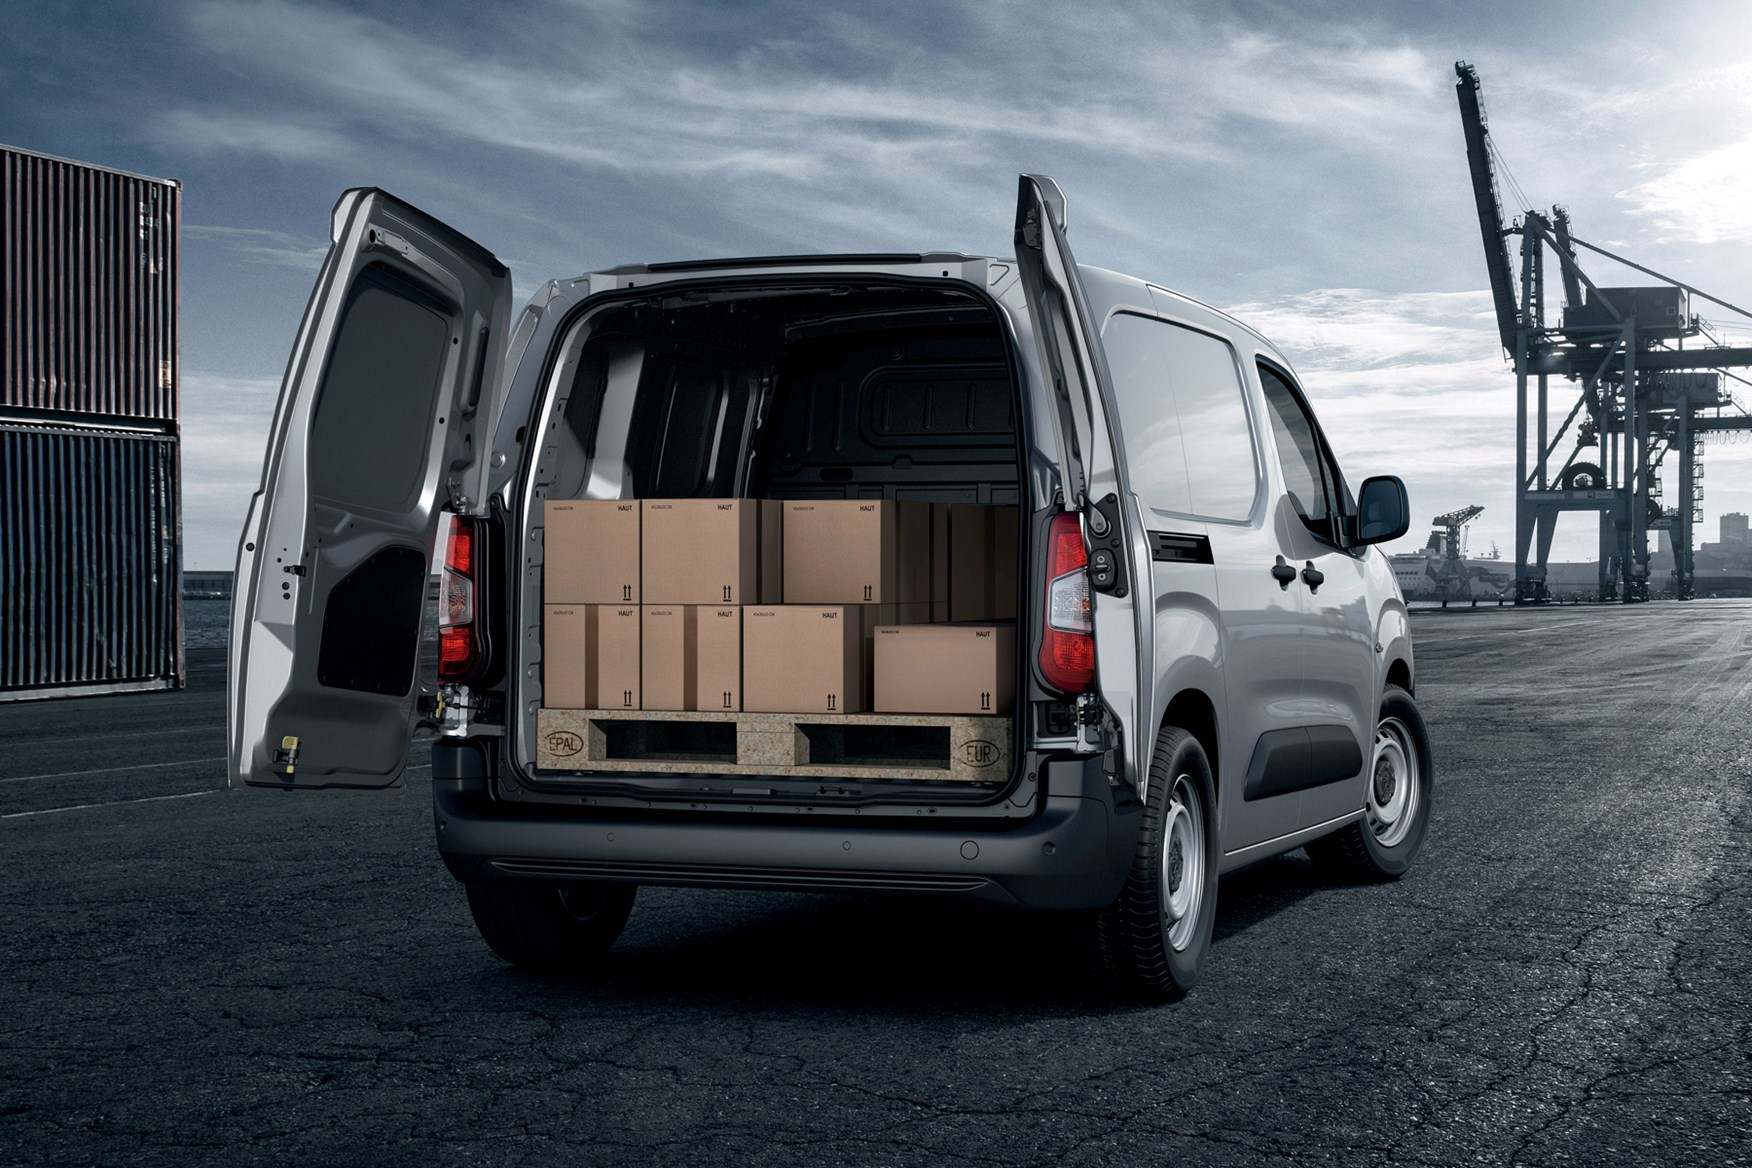 Peugeot Partner review 2020, rear view, load area filled with boxes